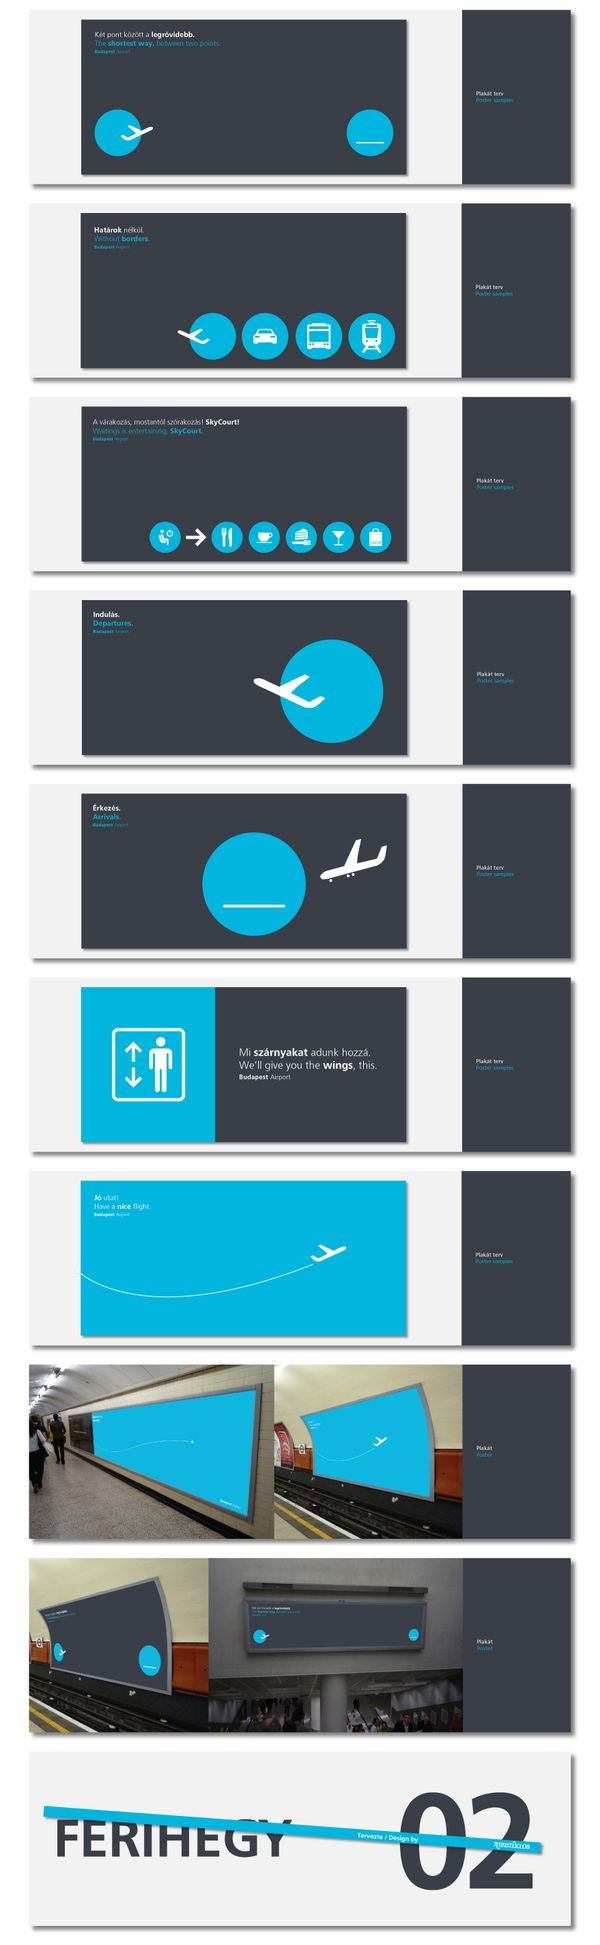 Absolutely brilliant use of symbols for Departures/Arrivals  BUD Terminal2 Graphics Concept / 2010 by kissmiklos , via Behance